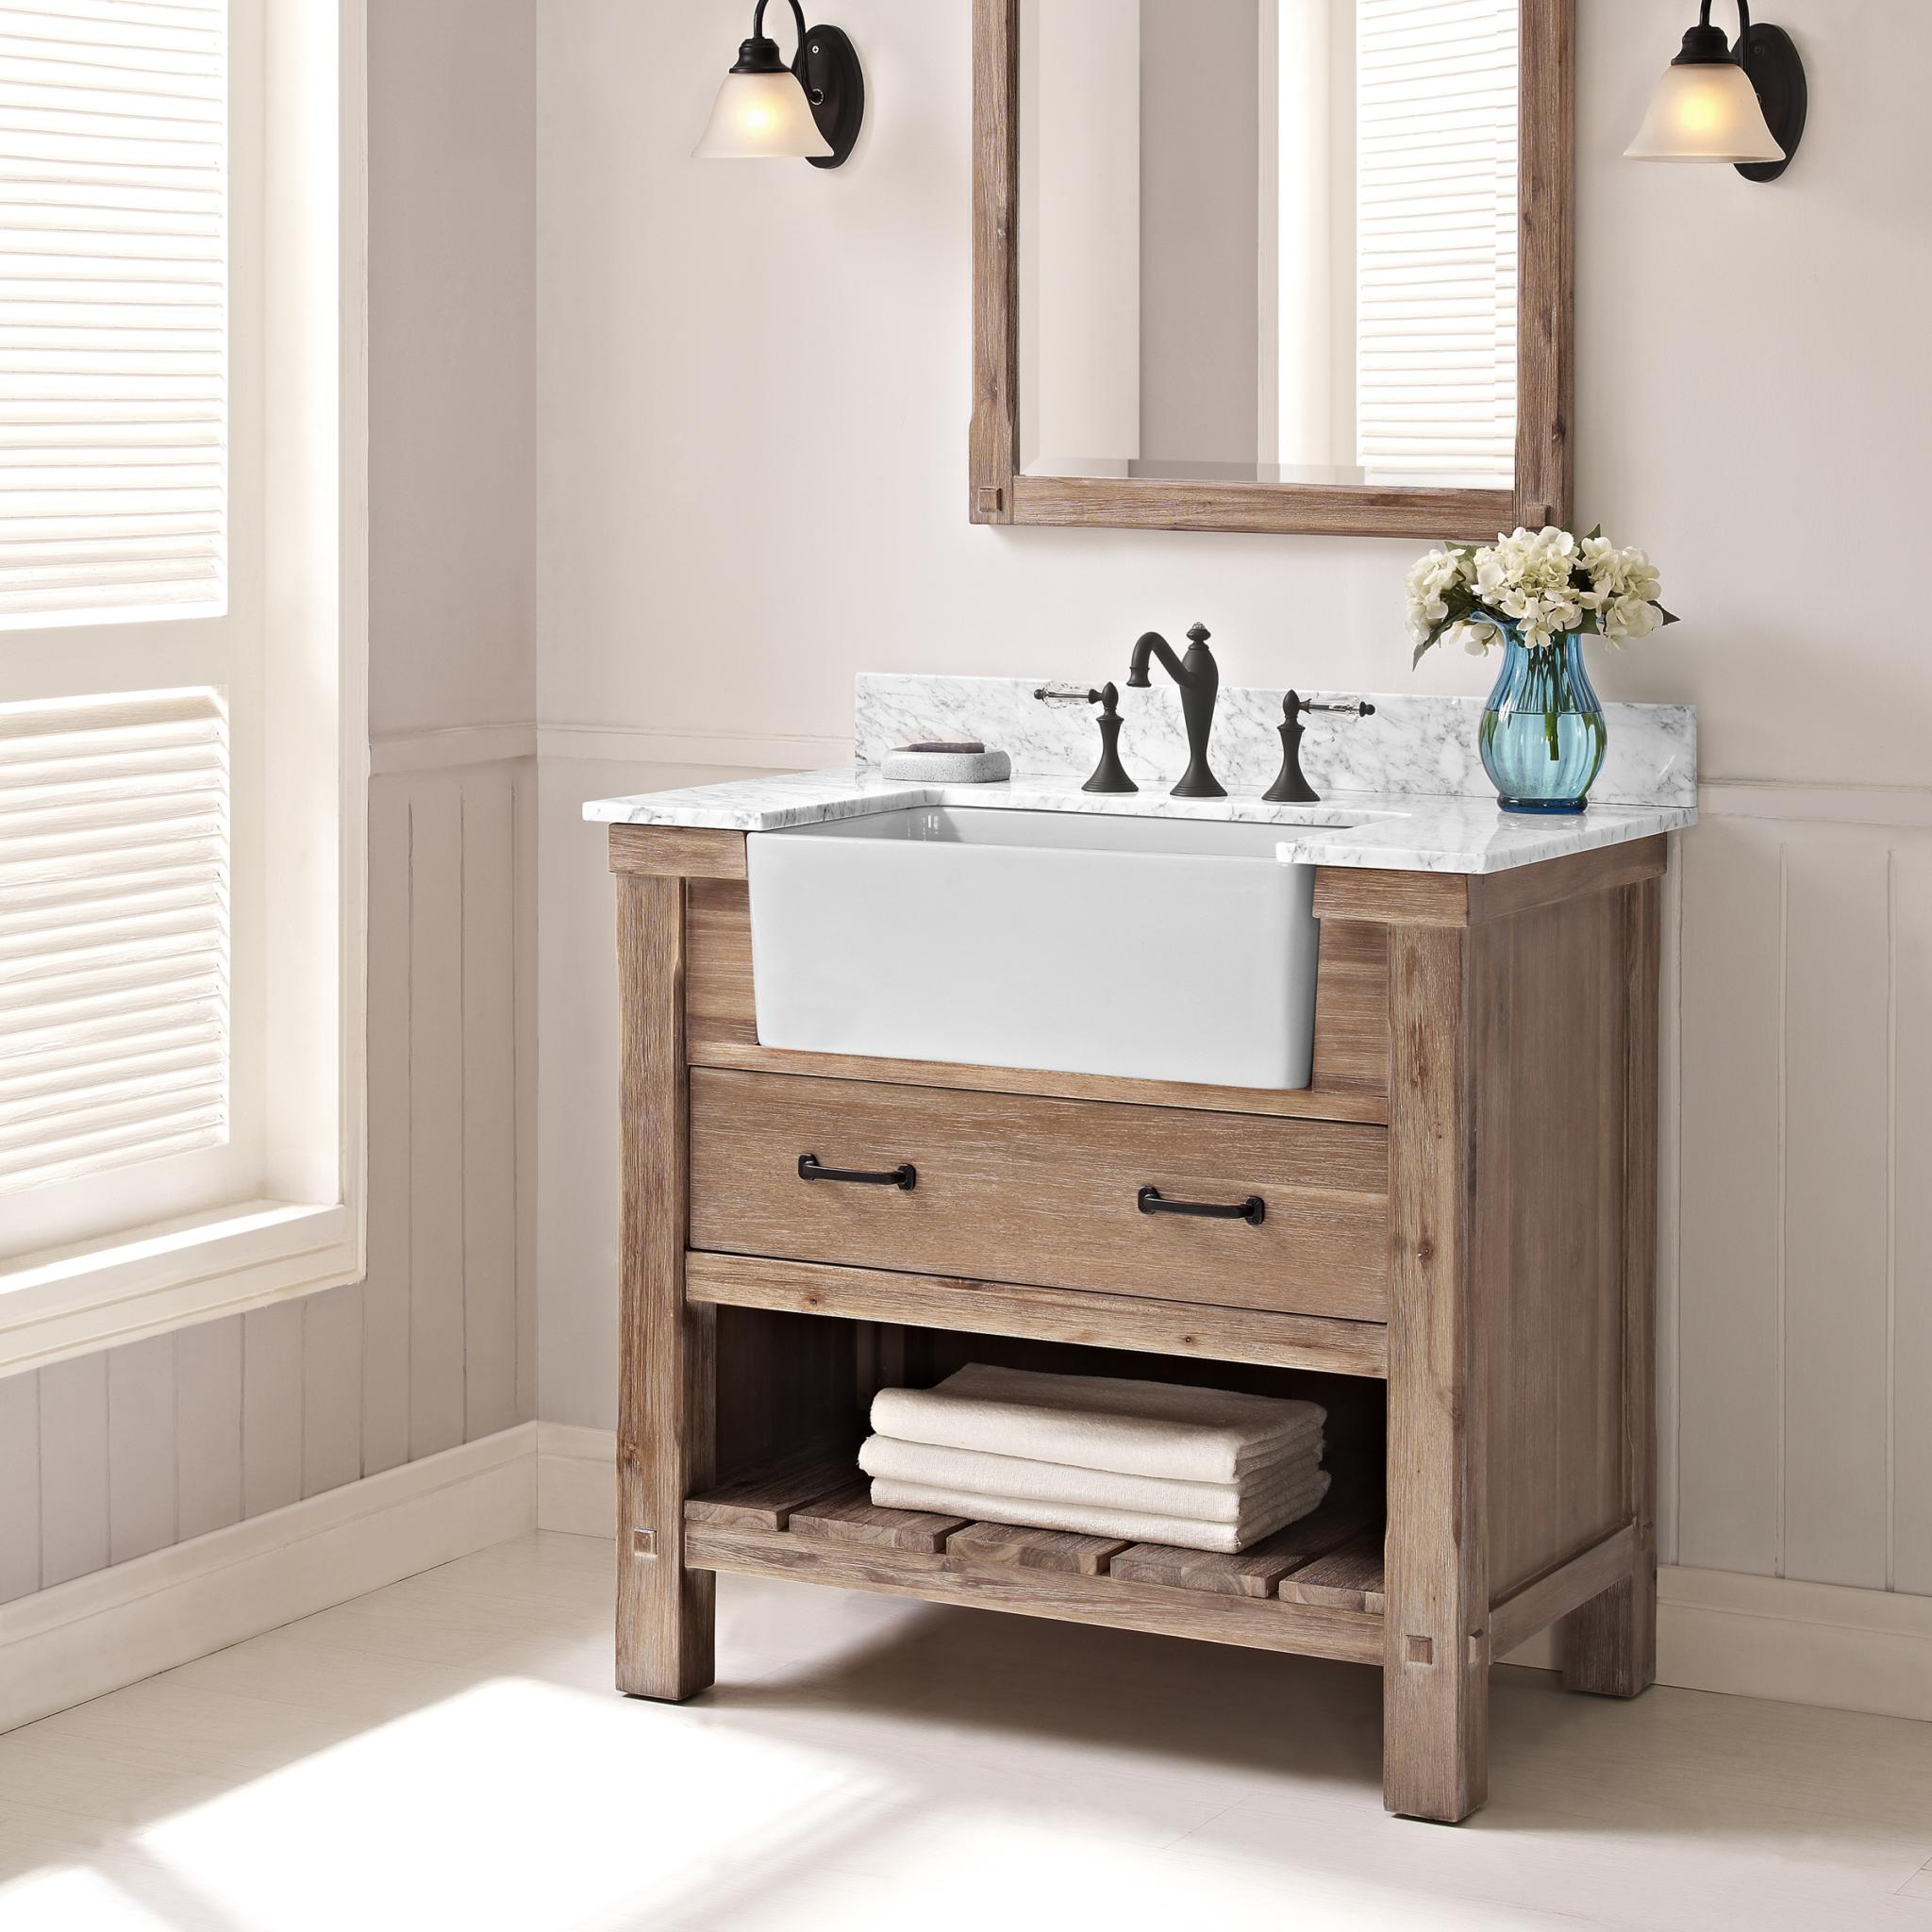 Latoscana Farmhouse Sink 36 How To Choose A Bathroom Vanity Abode